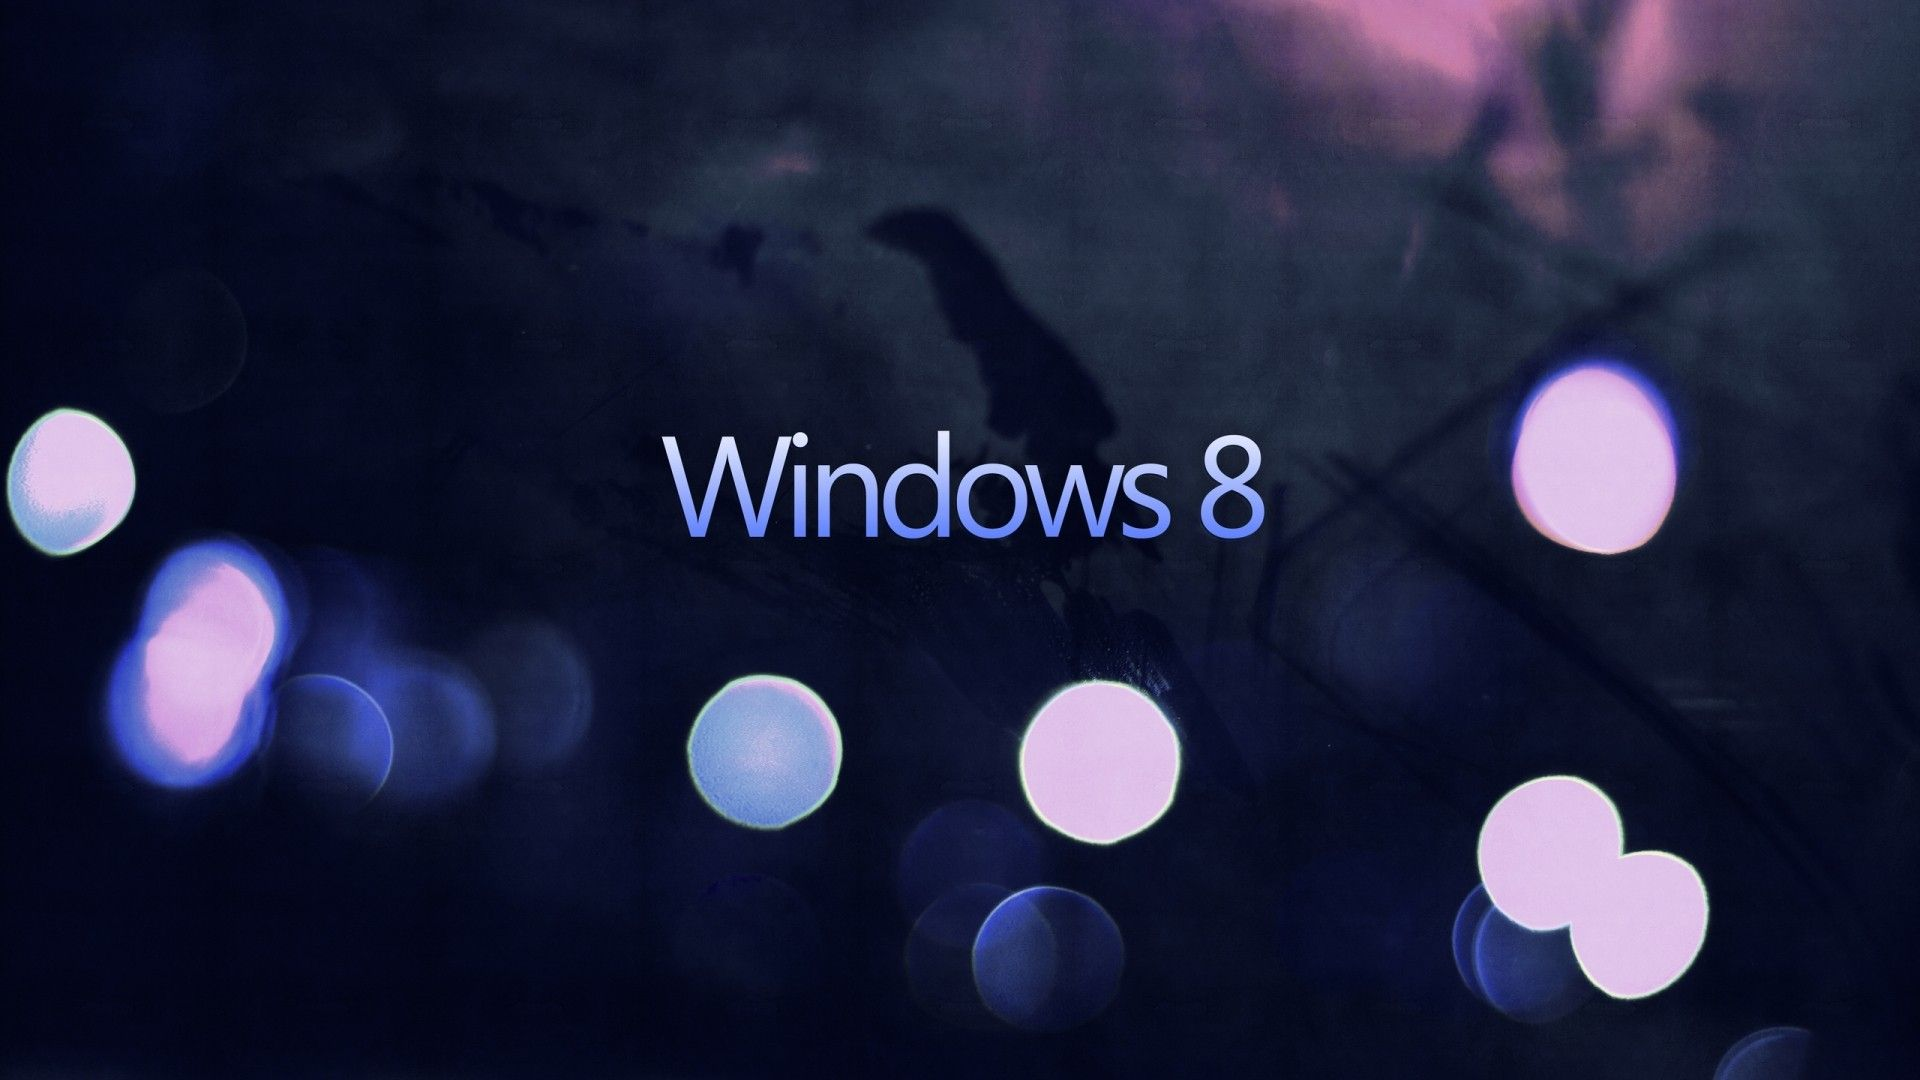 best windows 8 background 2013 hd wallpaperasd asdasd